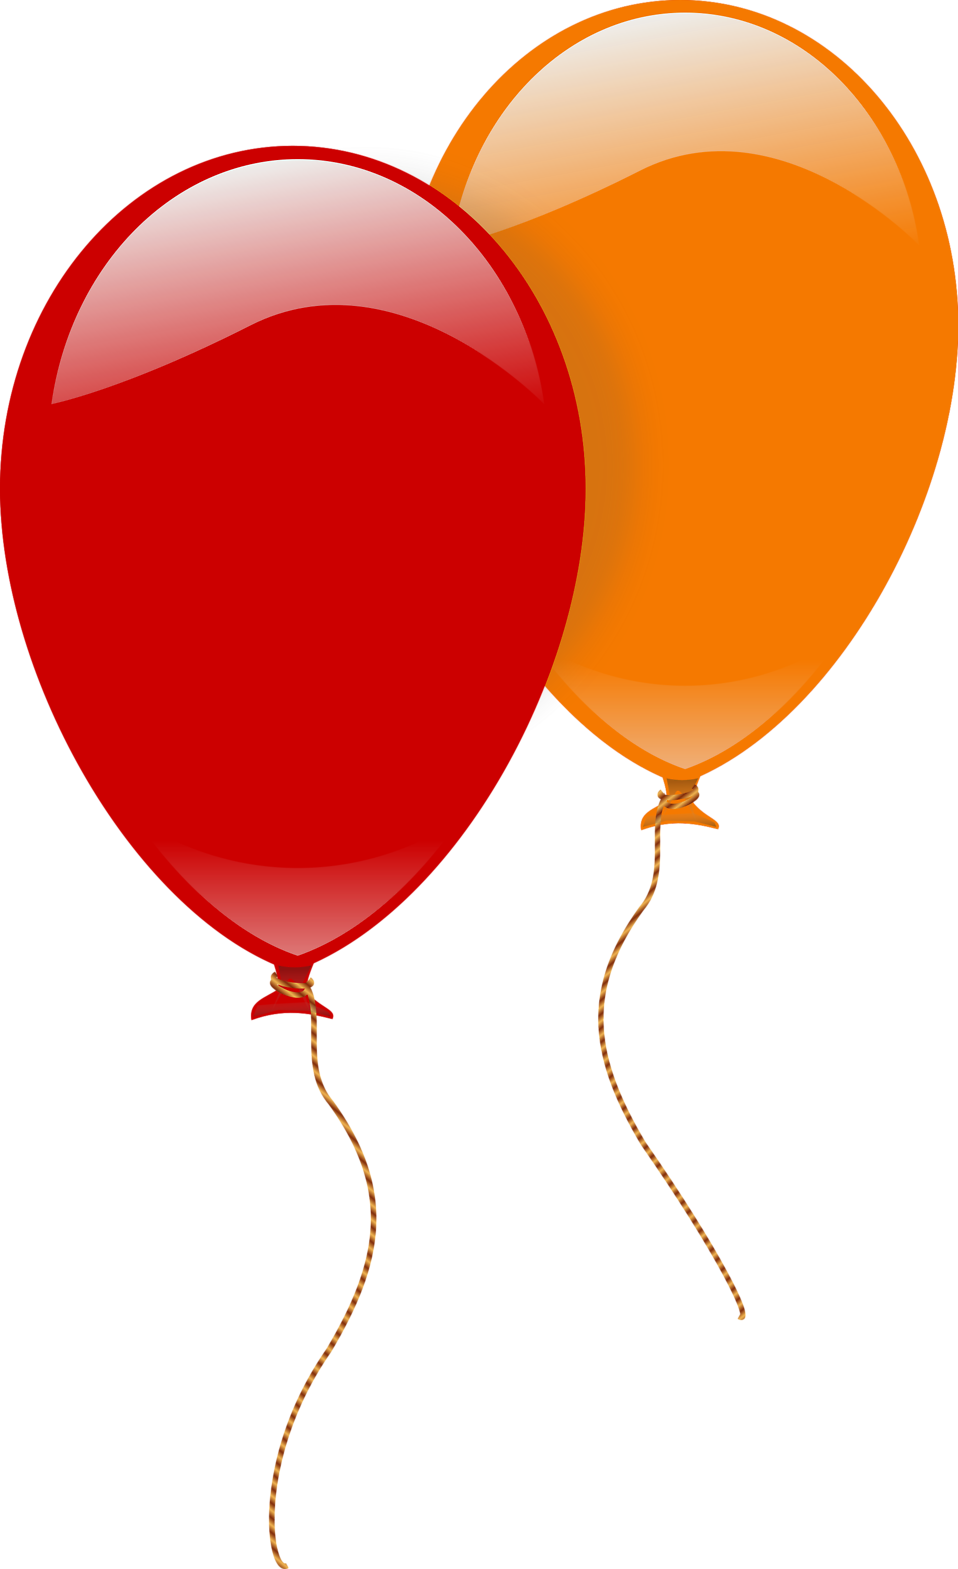 Heart shaped balloons clipart picture freeuse download Balloons | Free Stock Photo | Illustration of a red and an orange ... picture freeuse download